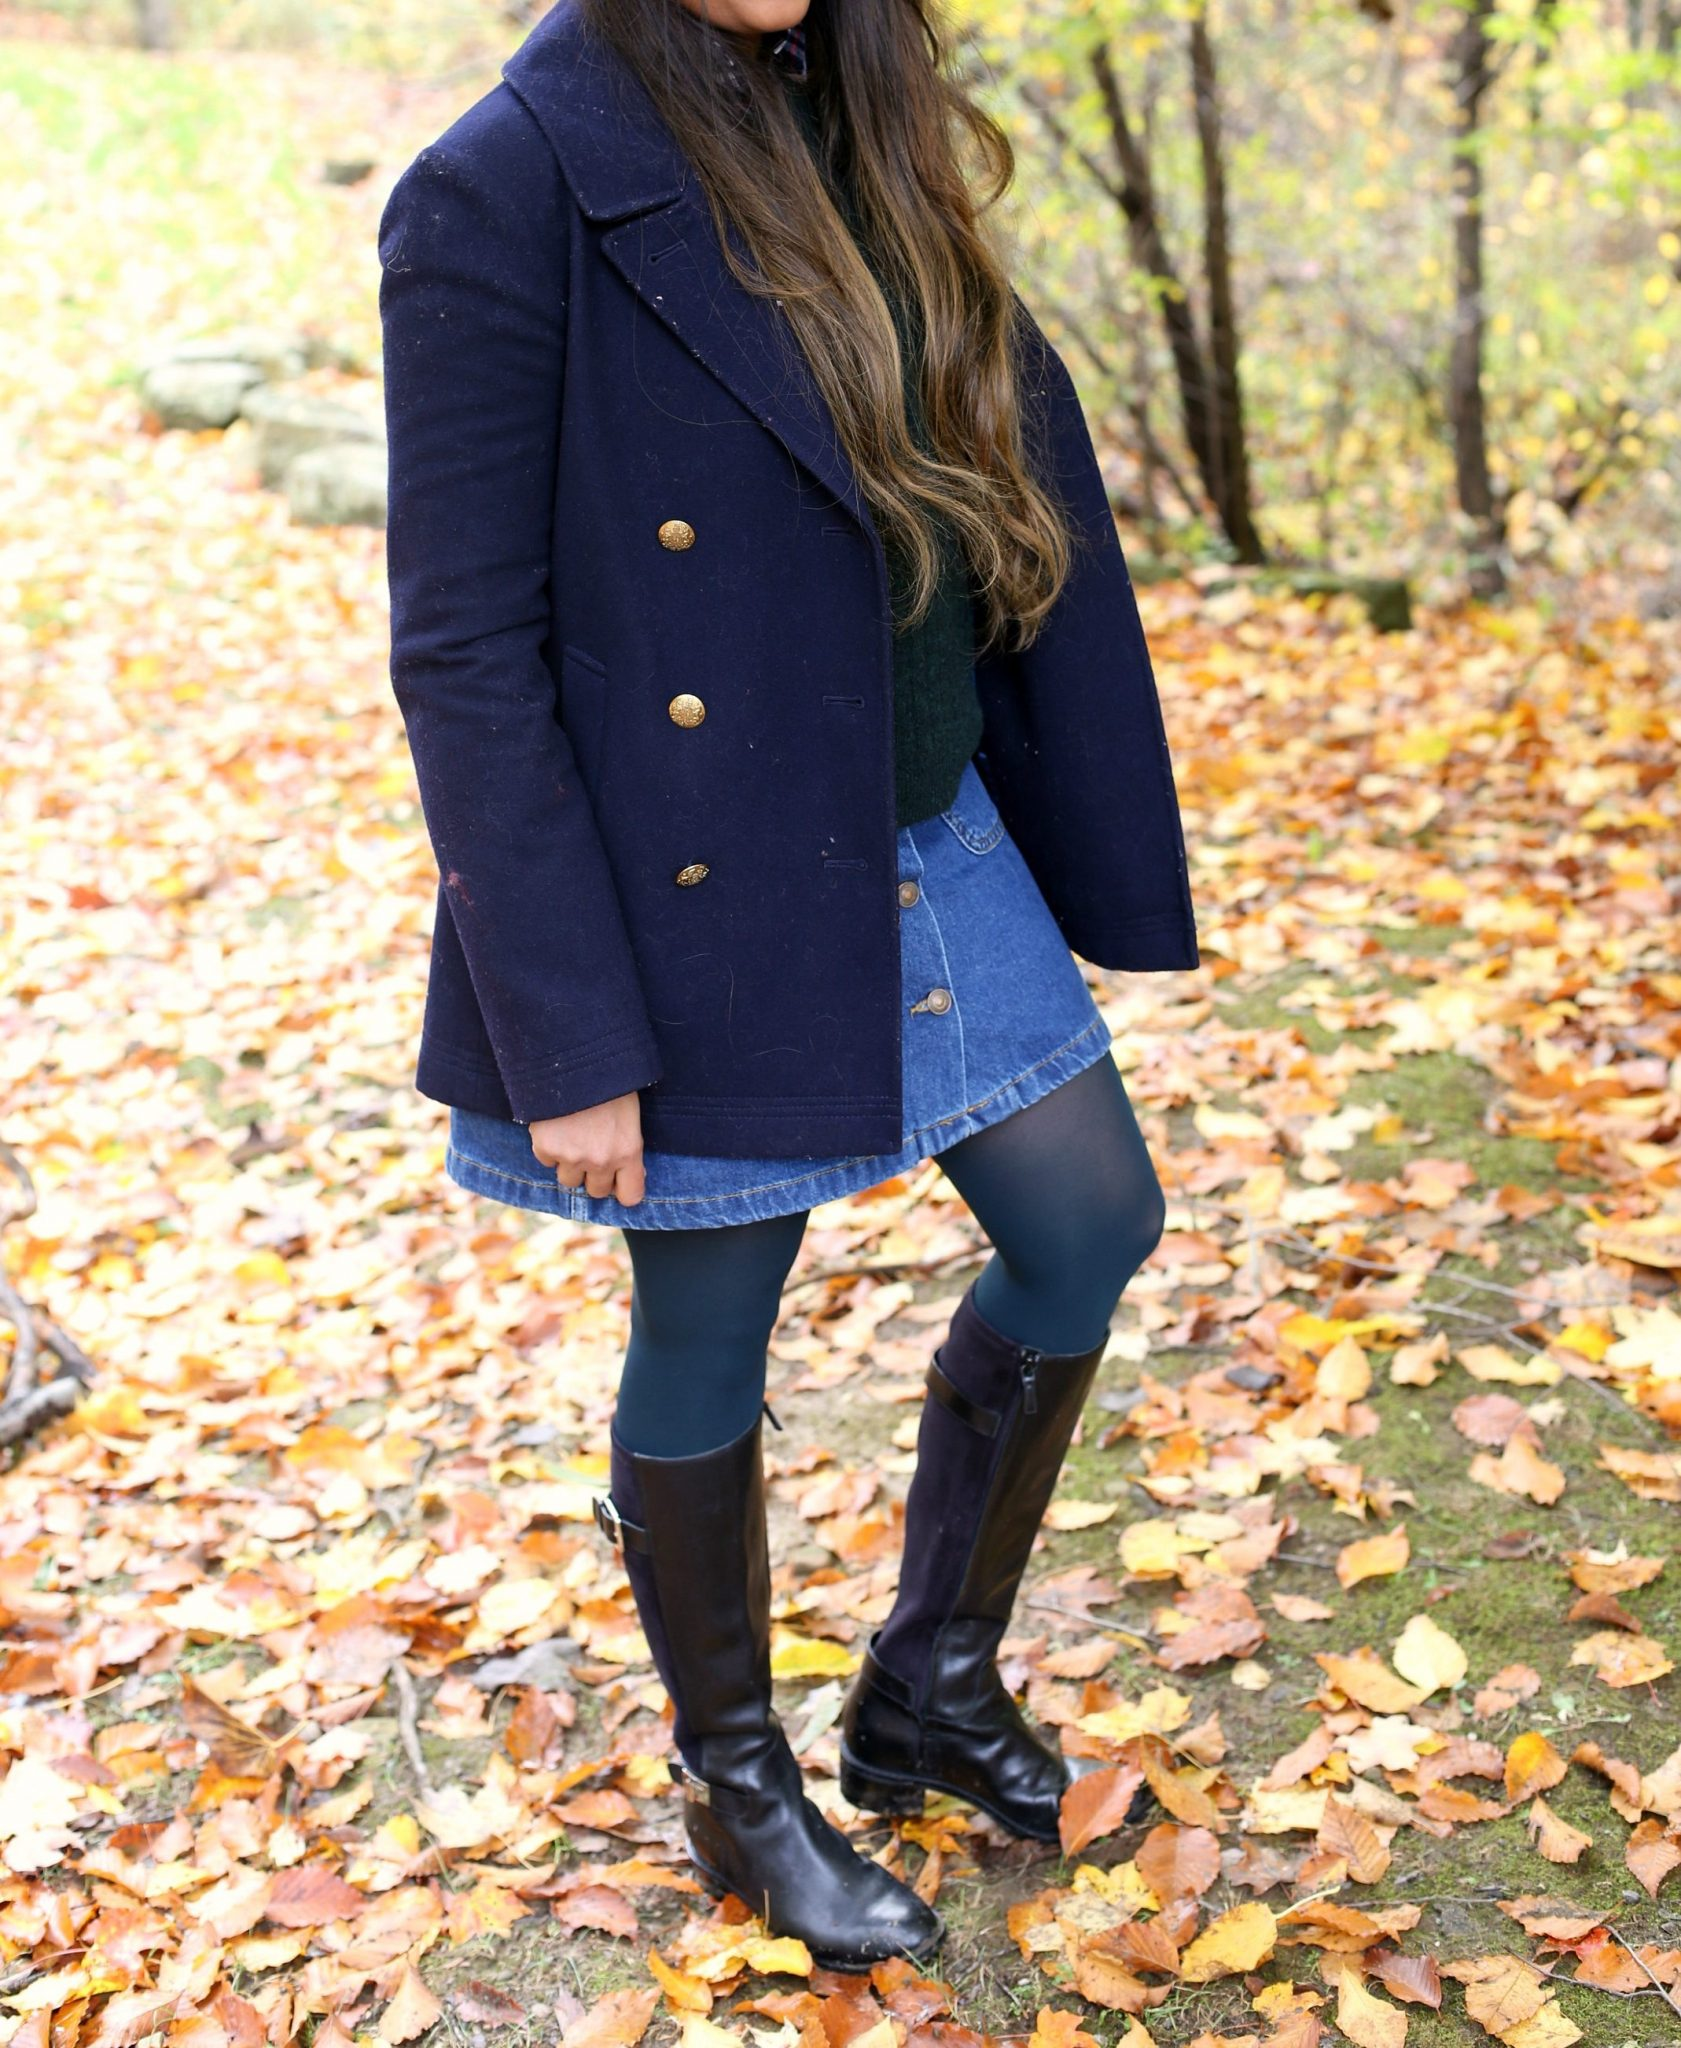 jcrew-navy-wool-peacoat-1